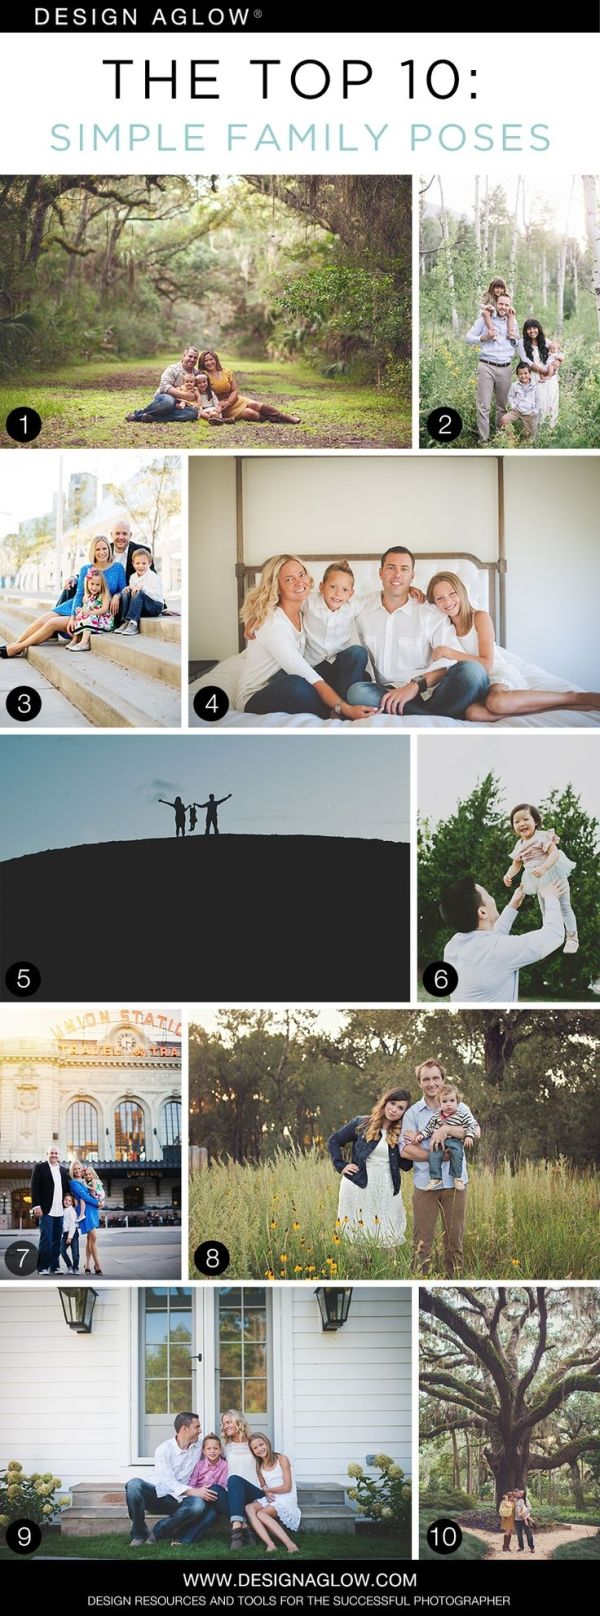 The Top 10: Simple Family Poses #designaglow by sophie